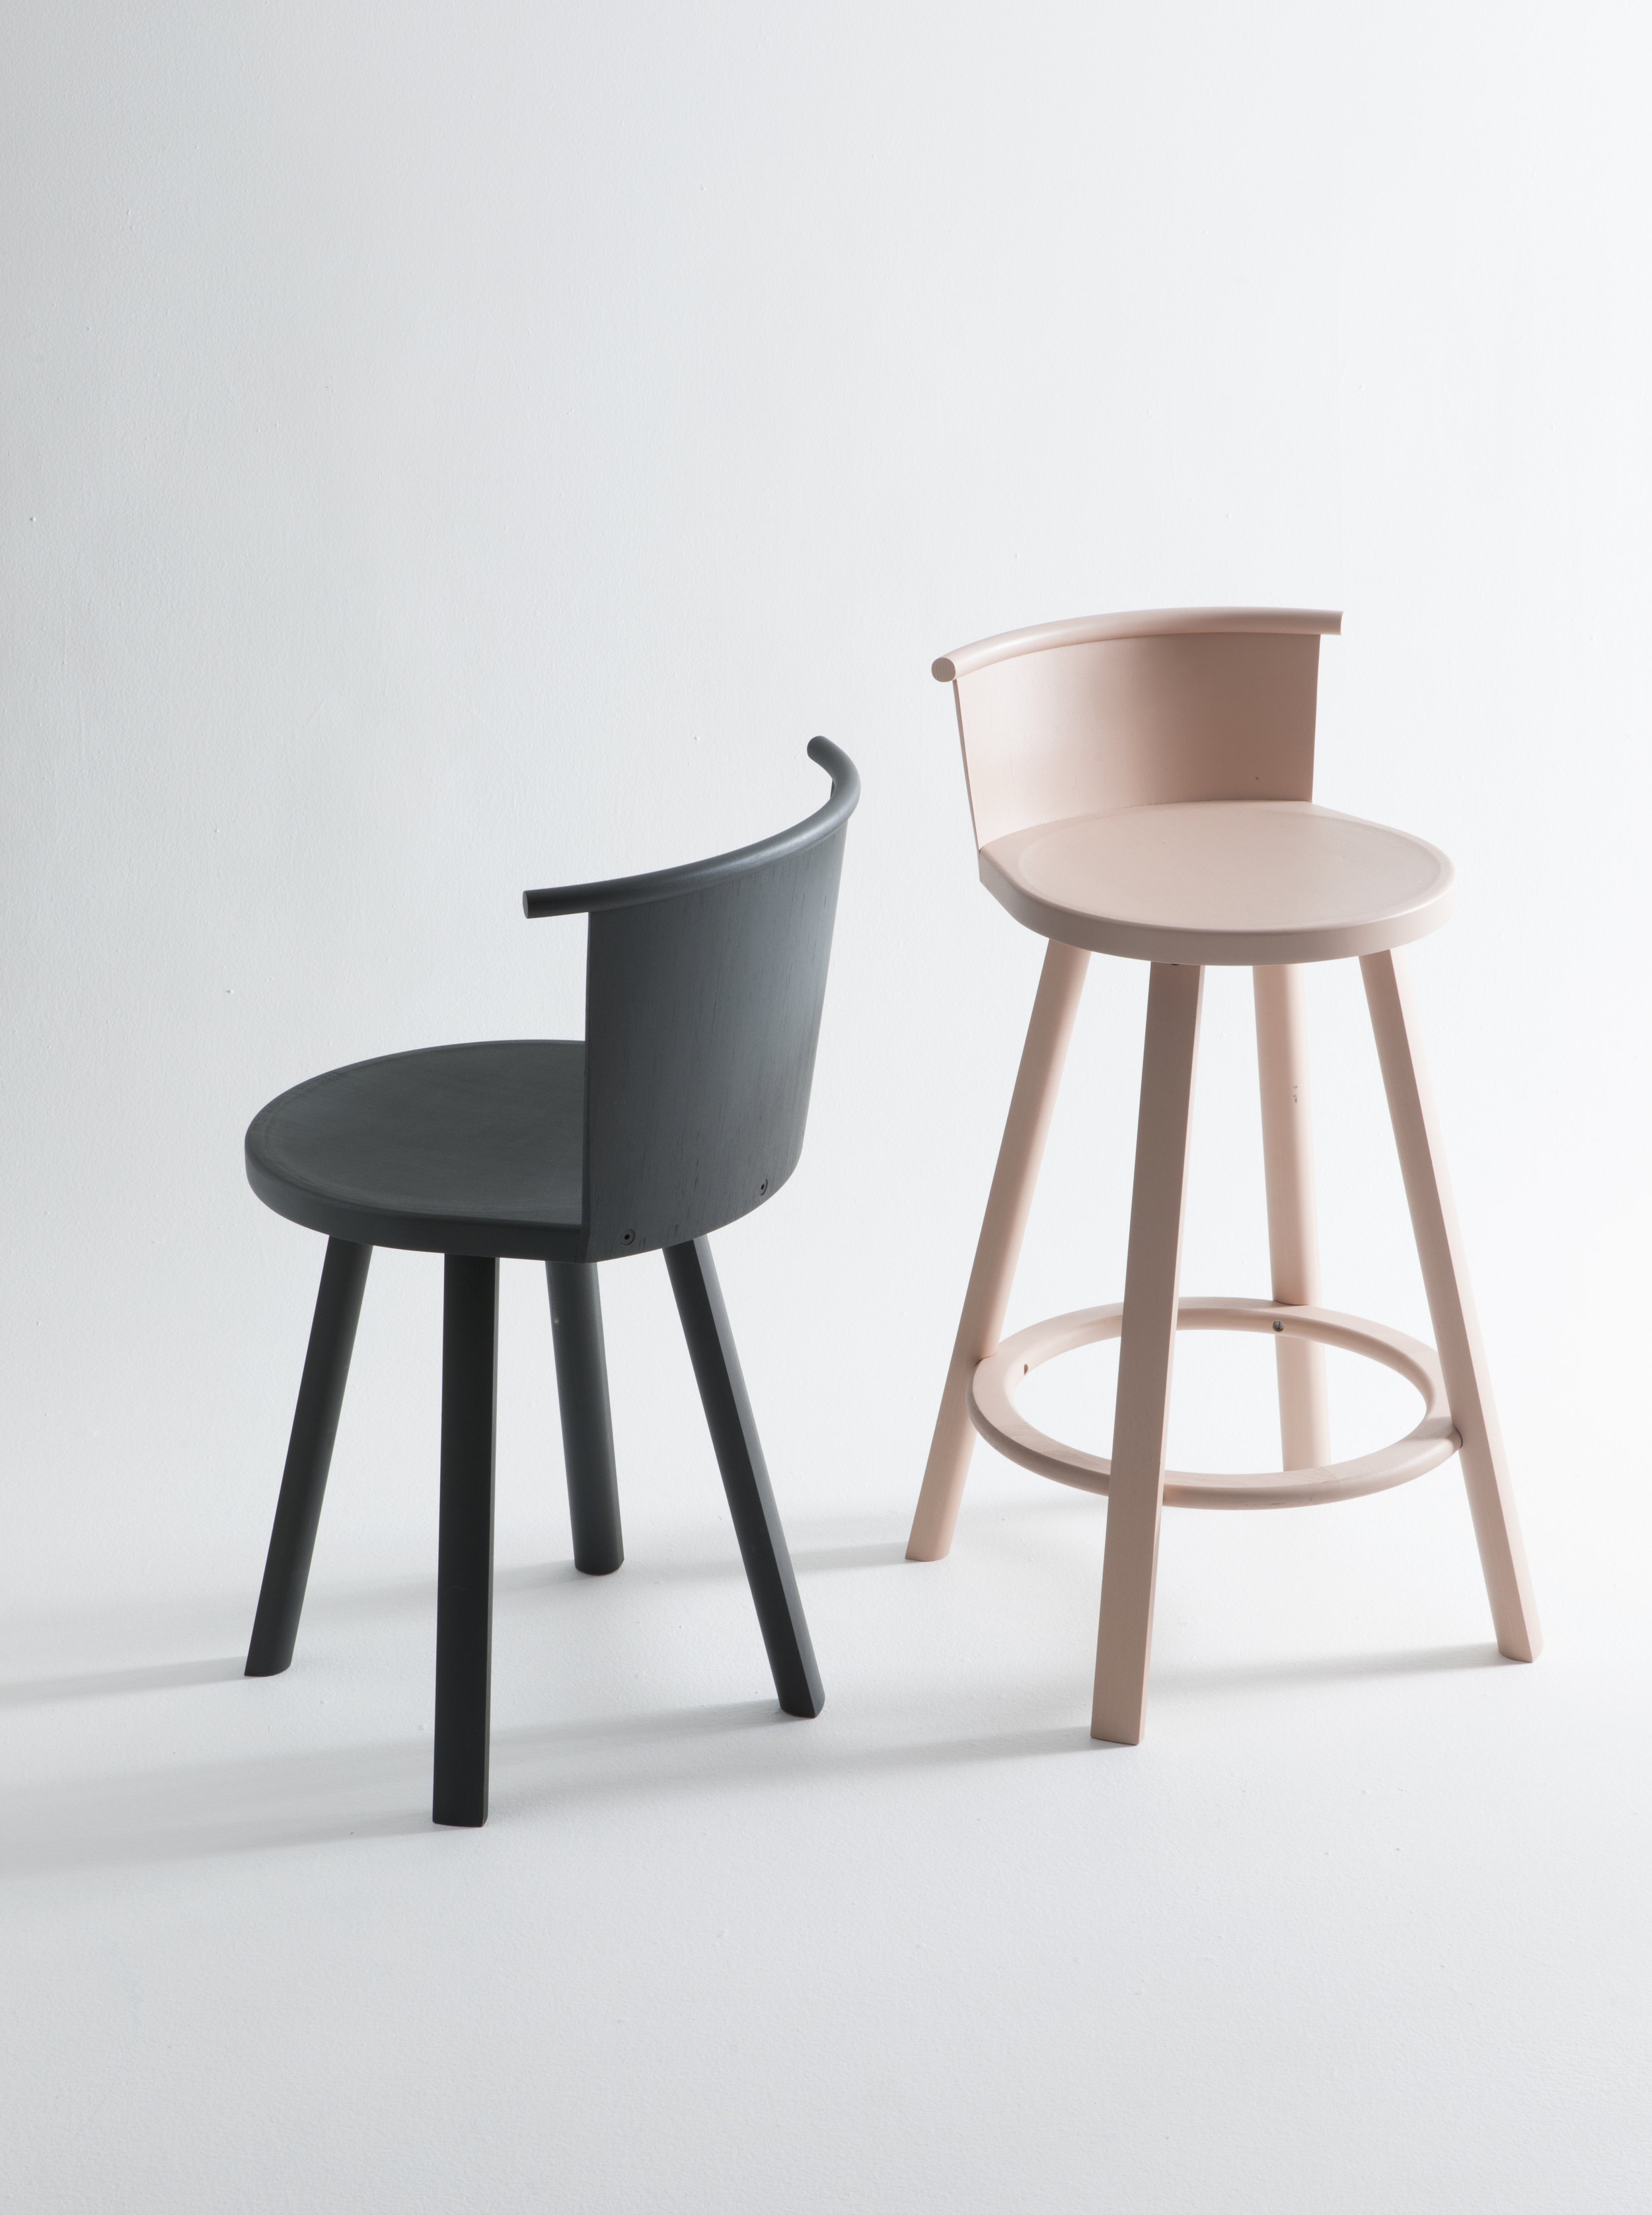 studio Gorm Enfield swivel chair and barstool3.jpg